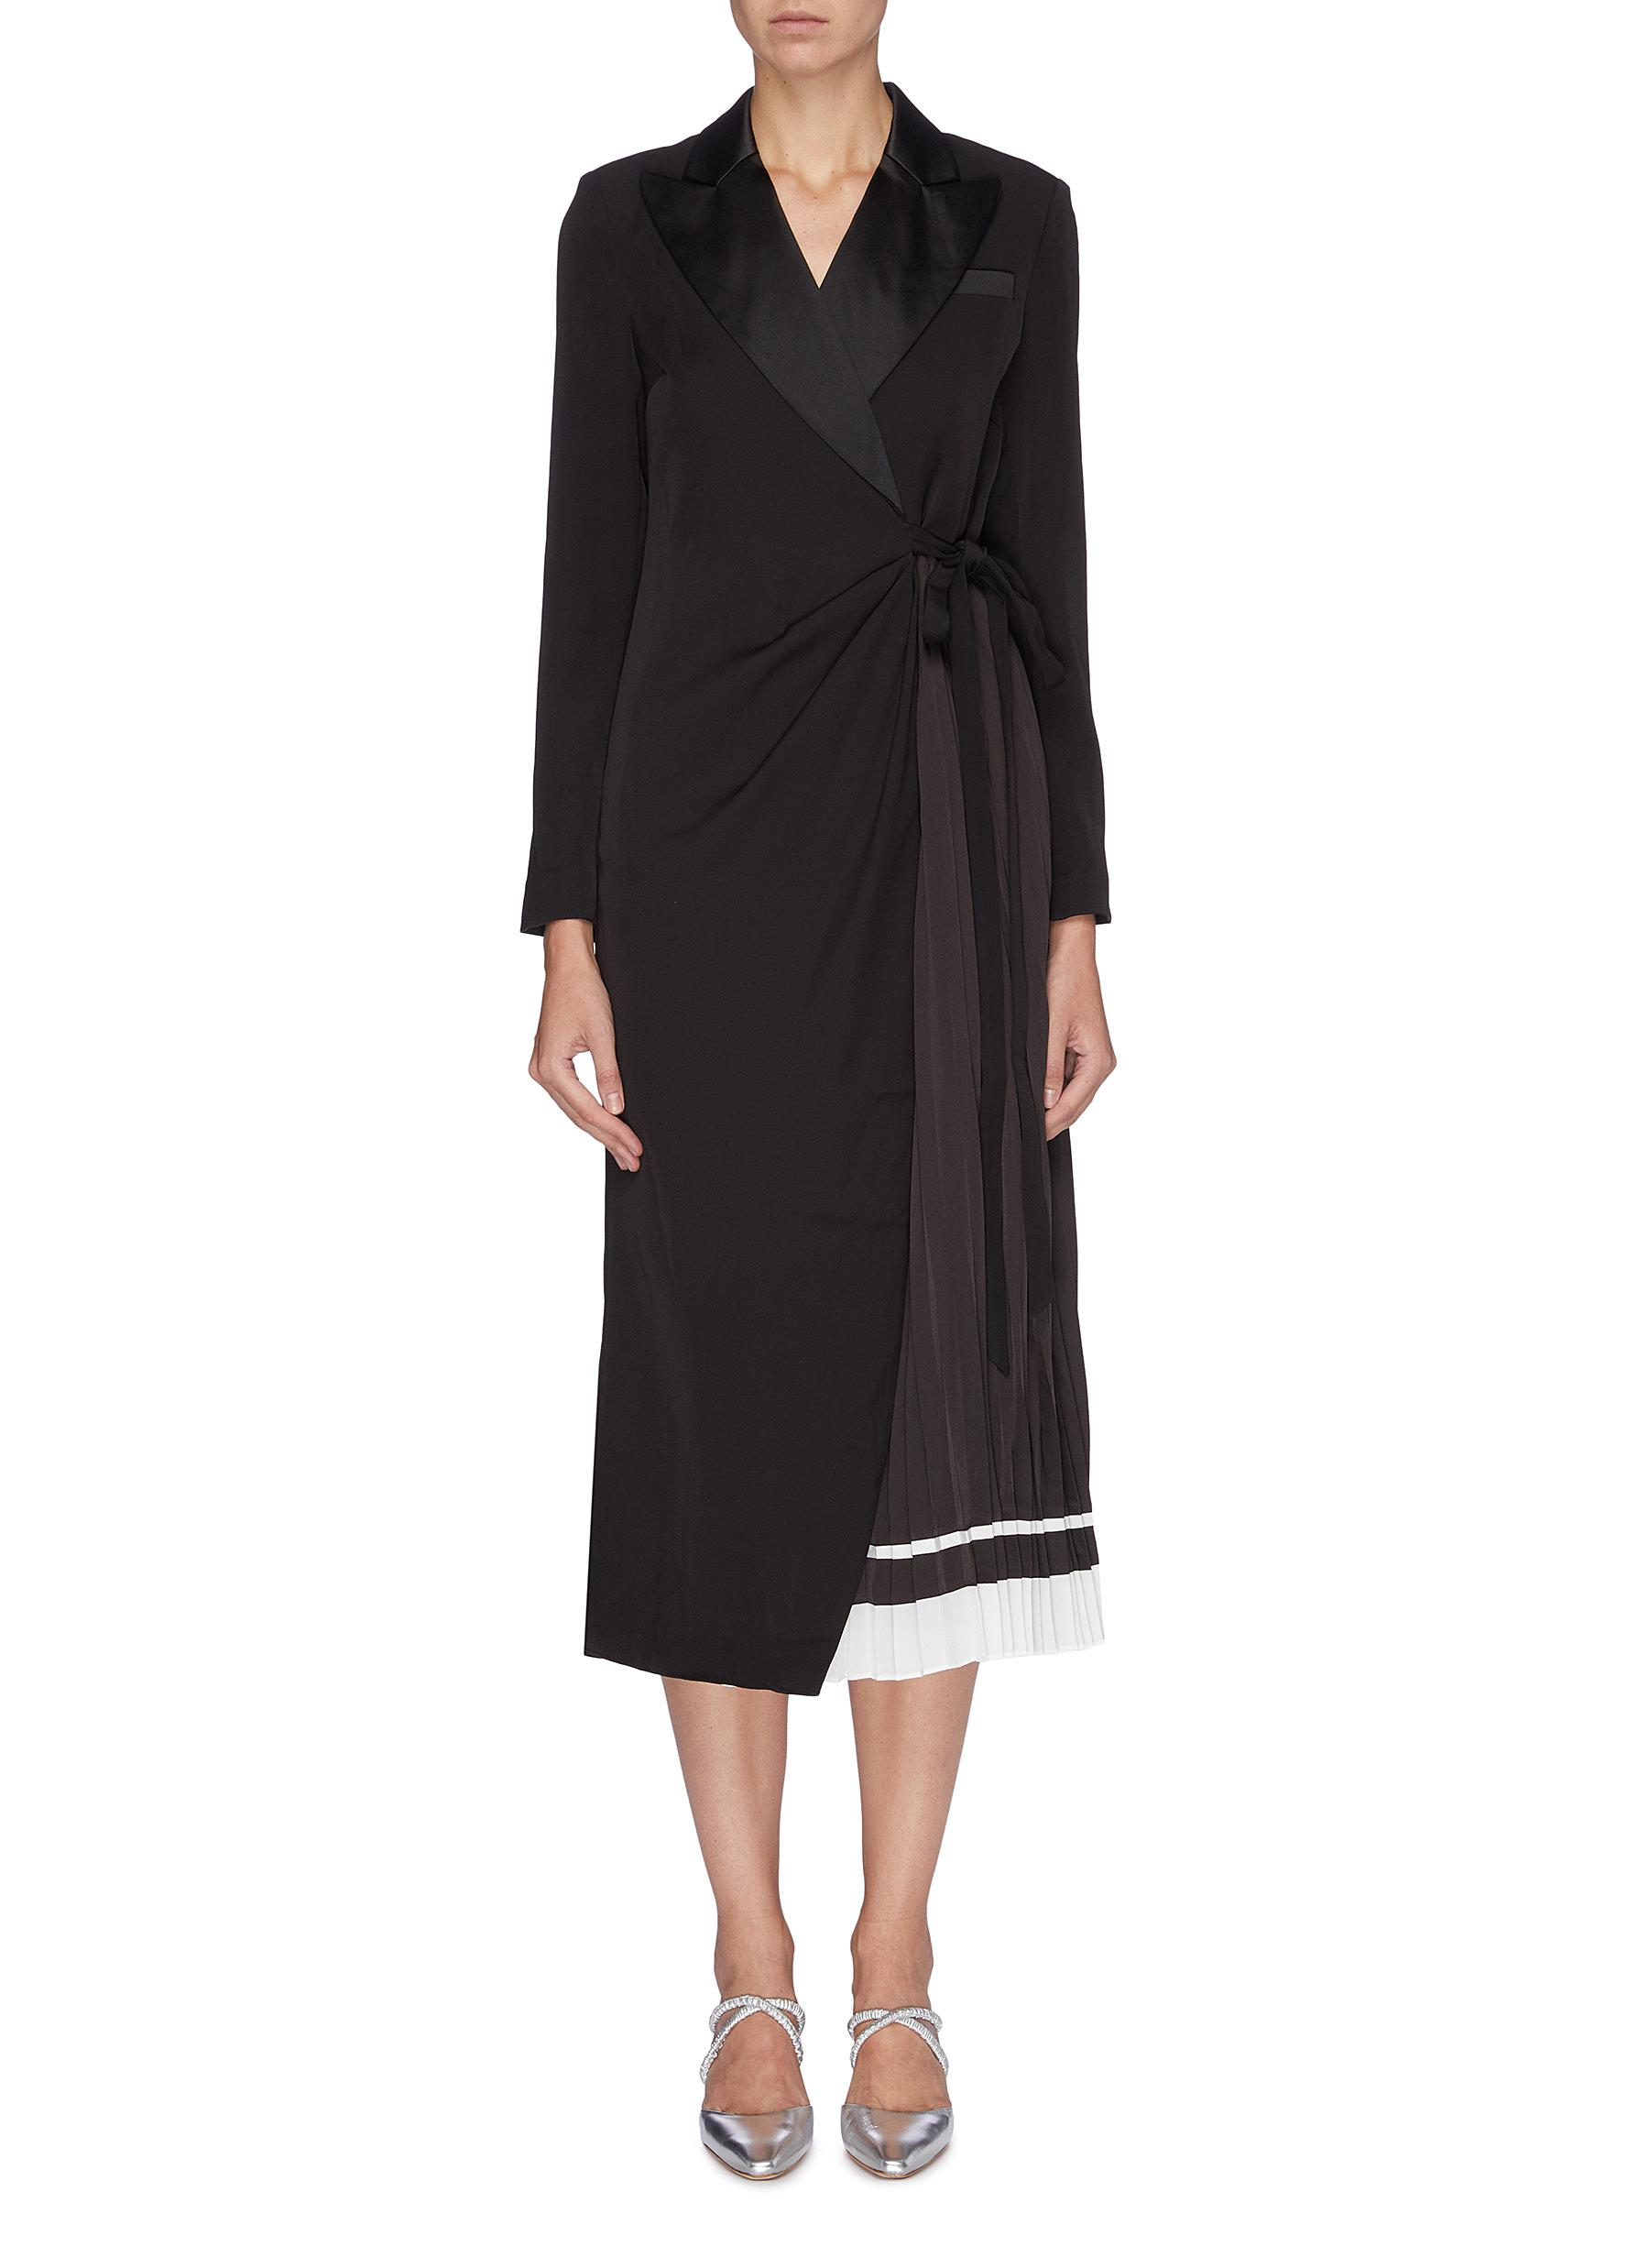 Peaked lapel pleated underlay crepe wrap dress by Self-Portrait